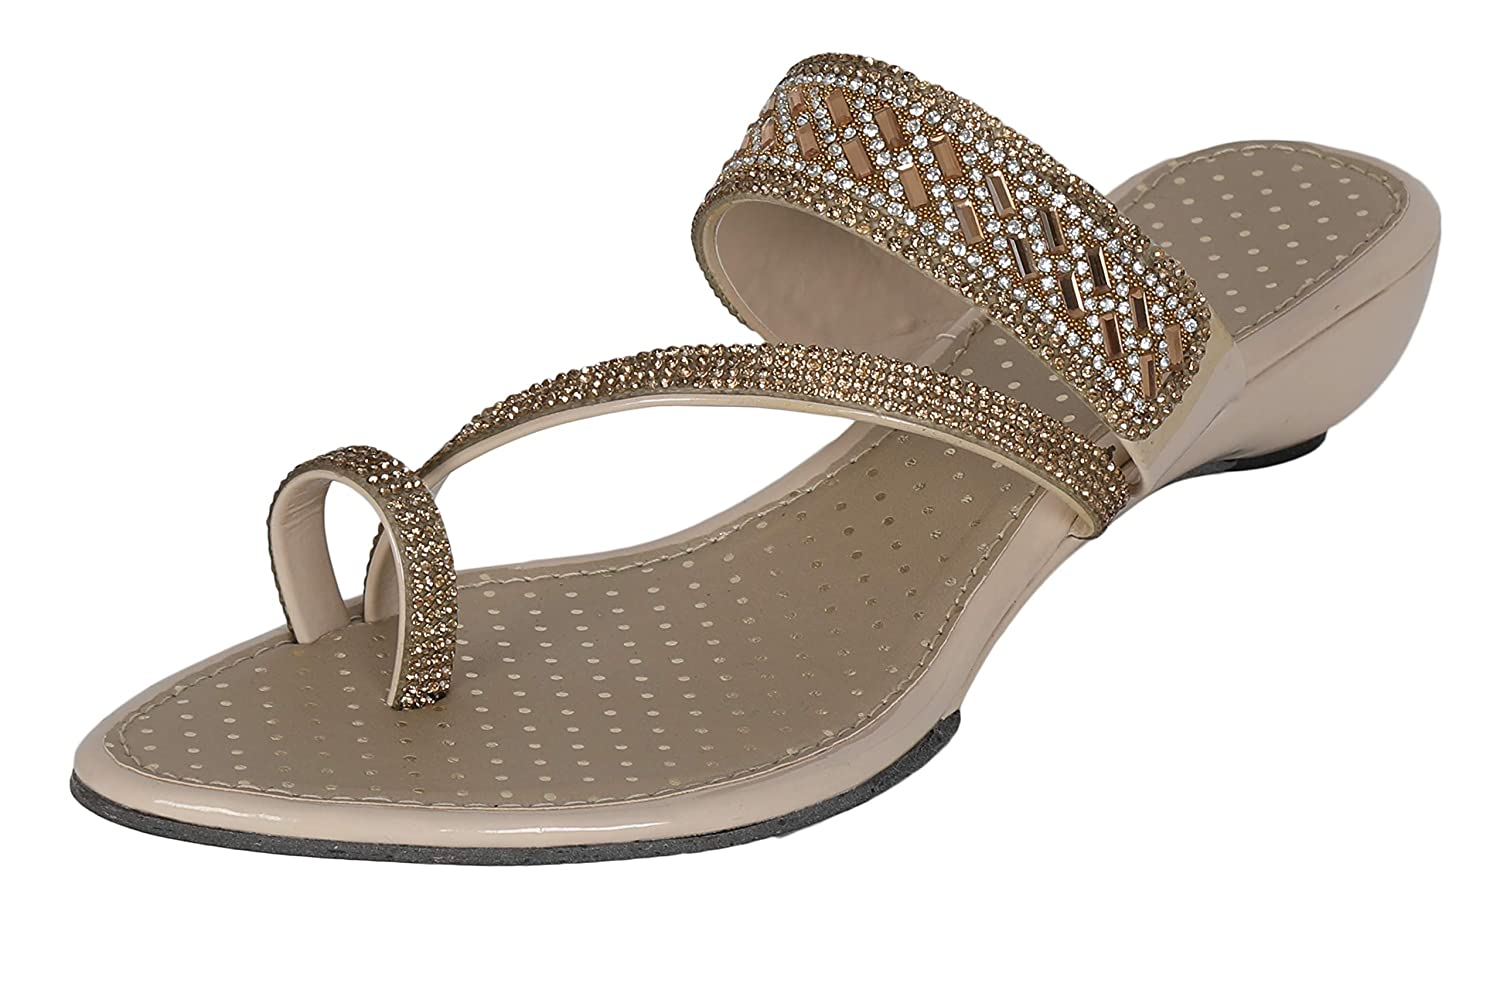 93e68730973 REPULSE Womens Designer Fashion Sandals  Buy Online at Low Prices in India  - Amazon.in